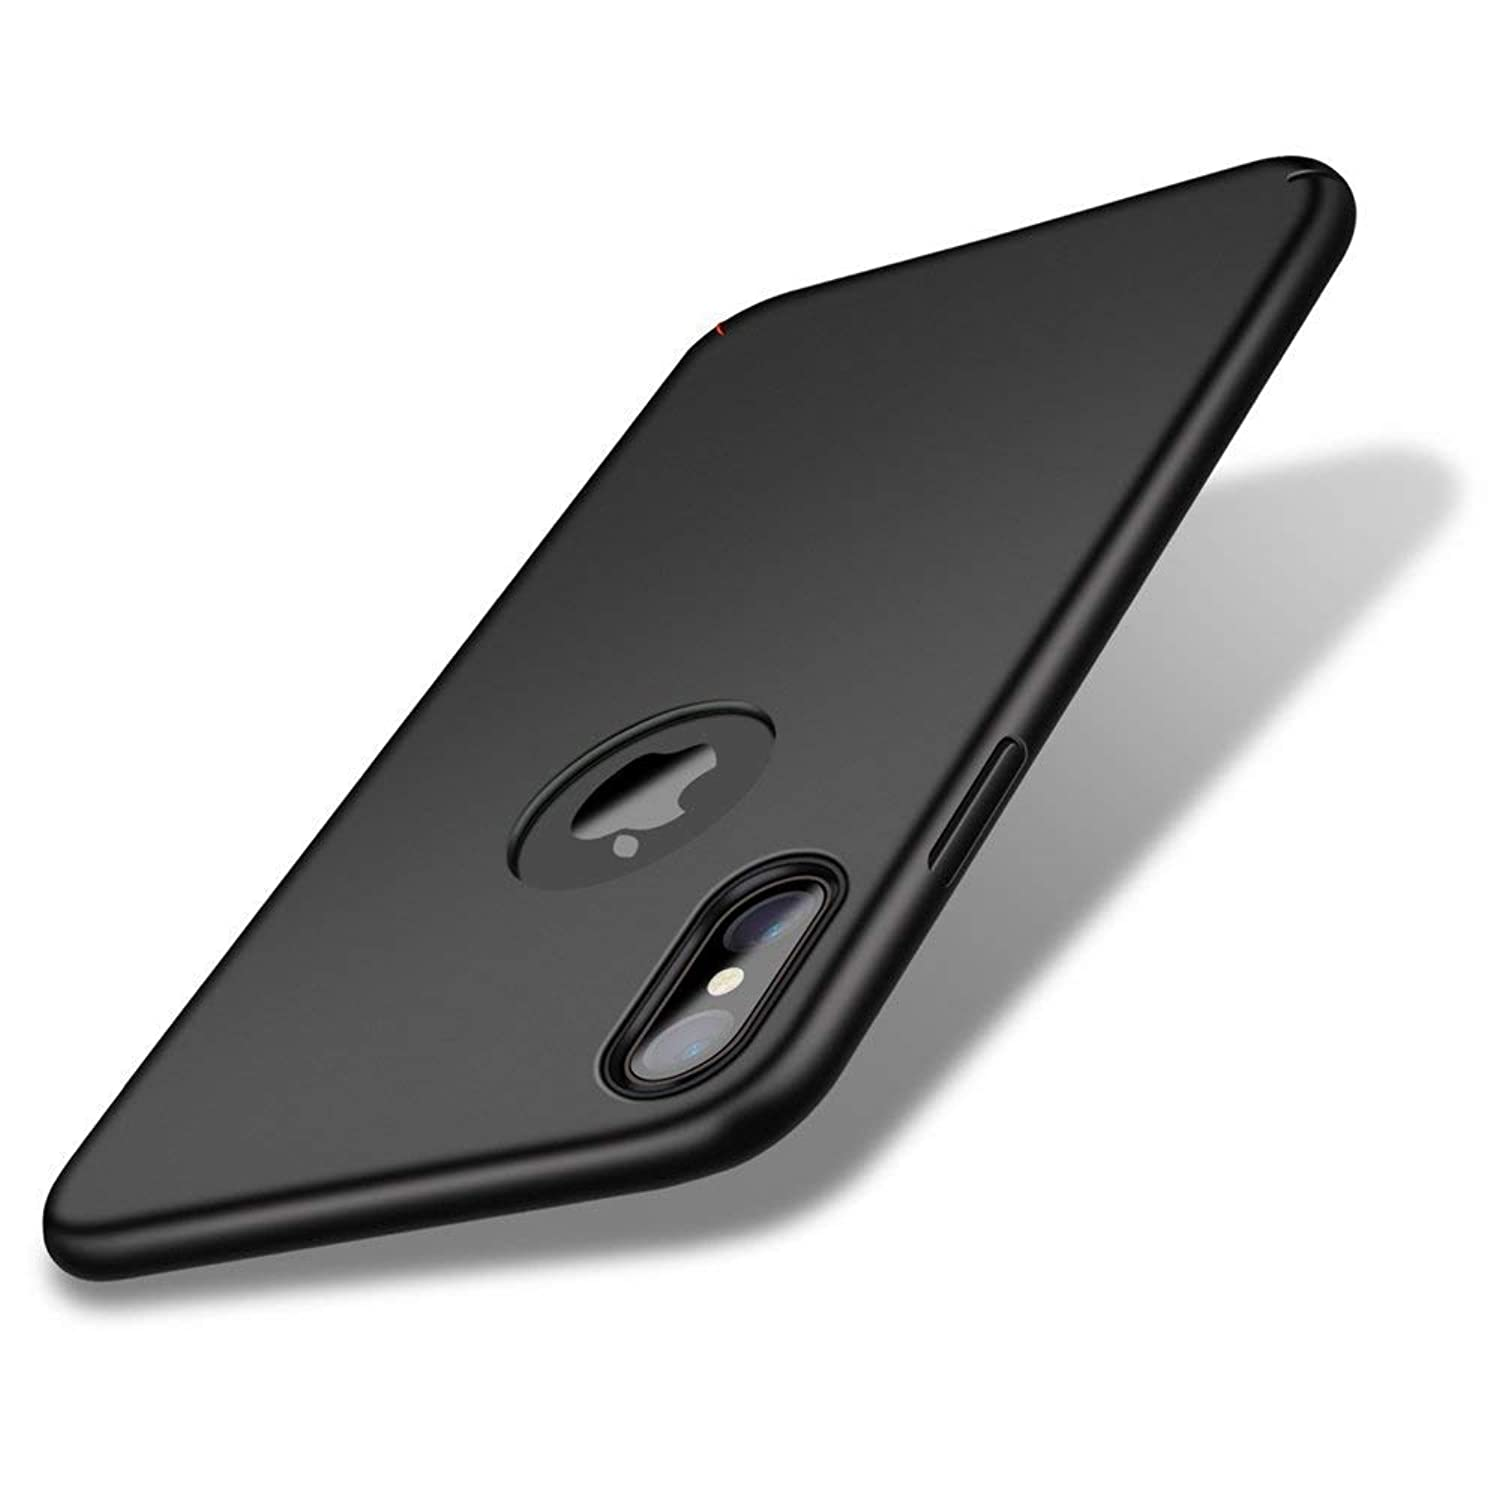 VIVICOM for iPhone X Ultra Slim Fit iPhone X case, Hard Plastic Full Protective Anti-Scratch Cover Ultra Thin Case Compatible with iPhone X - Black